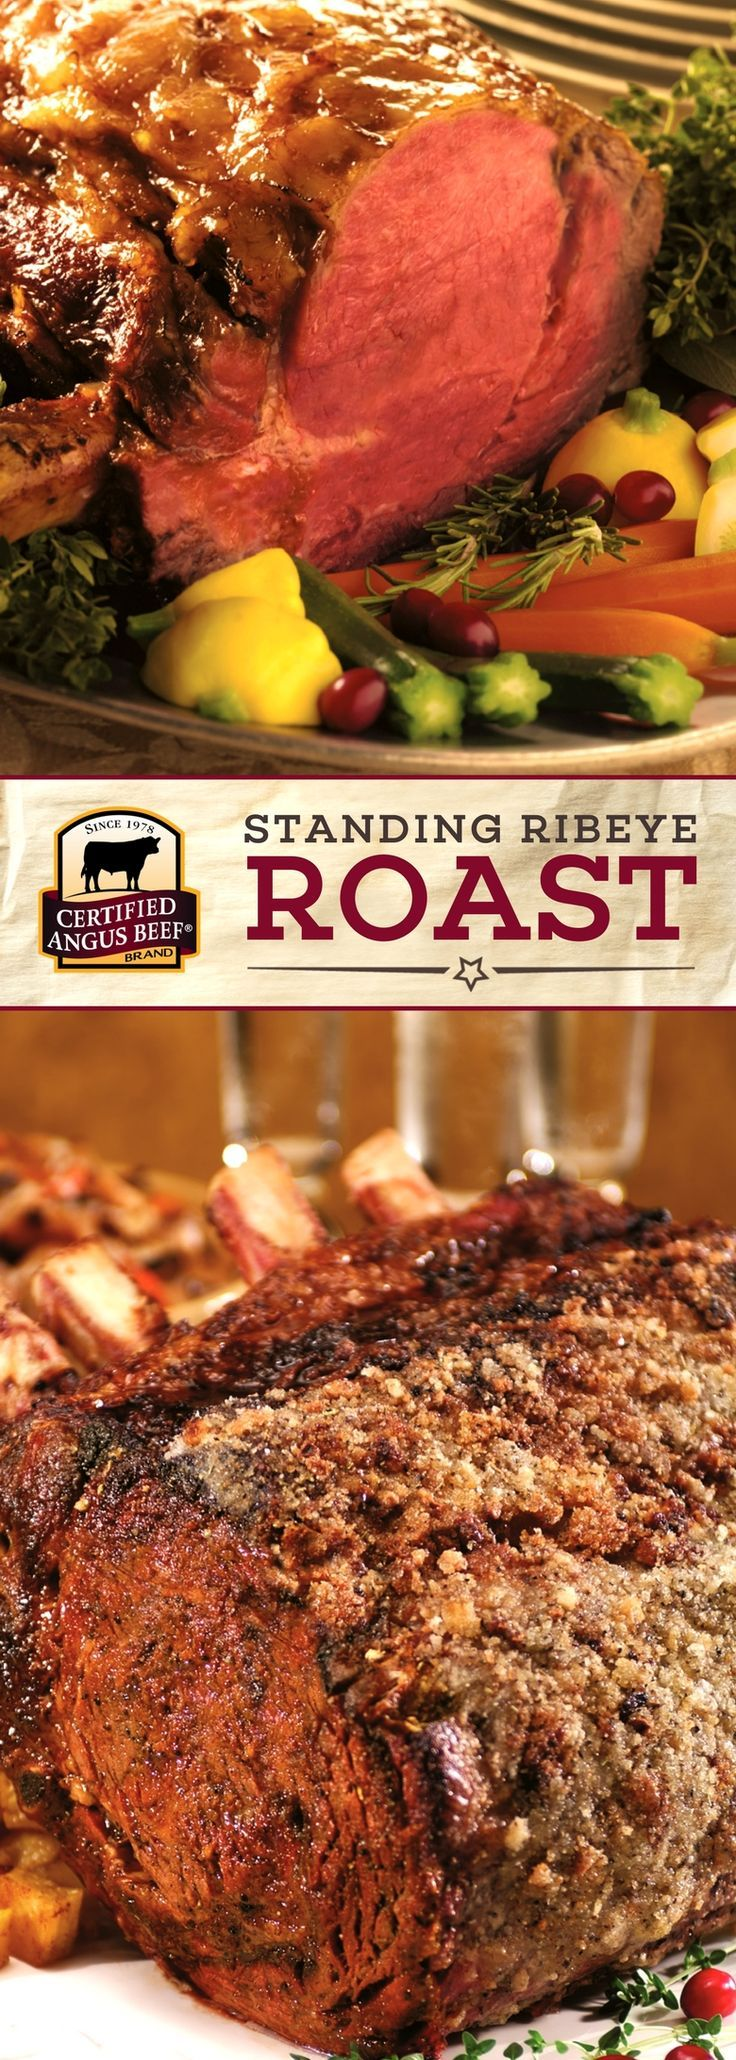 This is a SHOW STOPPER! The Classic Christmas roast! Certified Angus Beef®️️️️️️️️️️️️️️️️ brand Standing Ribeye Roast has rich flavor, juicy tenderness and a majestic appearance perfect for your holiday dinner.  A rib roast is easy to make with help from our Roast Perfect app and always makes an impressive centerpiece for your holiday meal #bestangusbeef #certifiedangusbeef #roastperfect #roastrecipe #beefrecipe #holidayrecipes